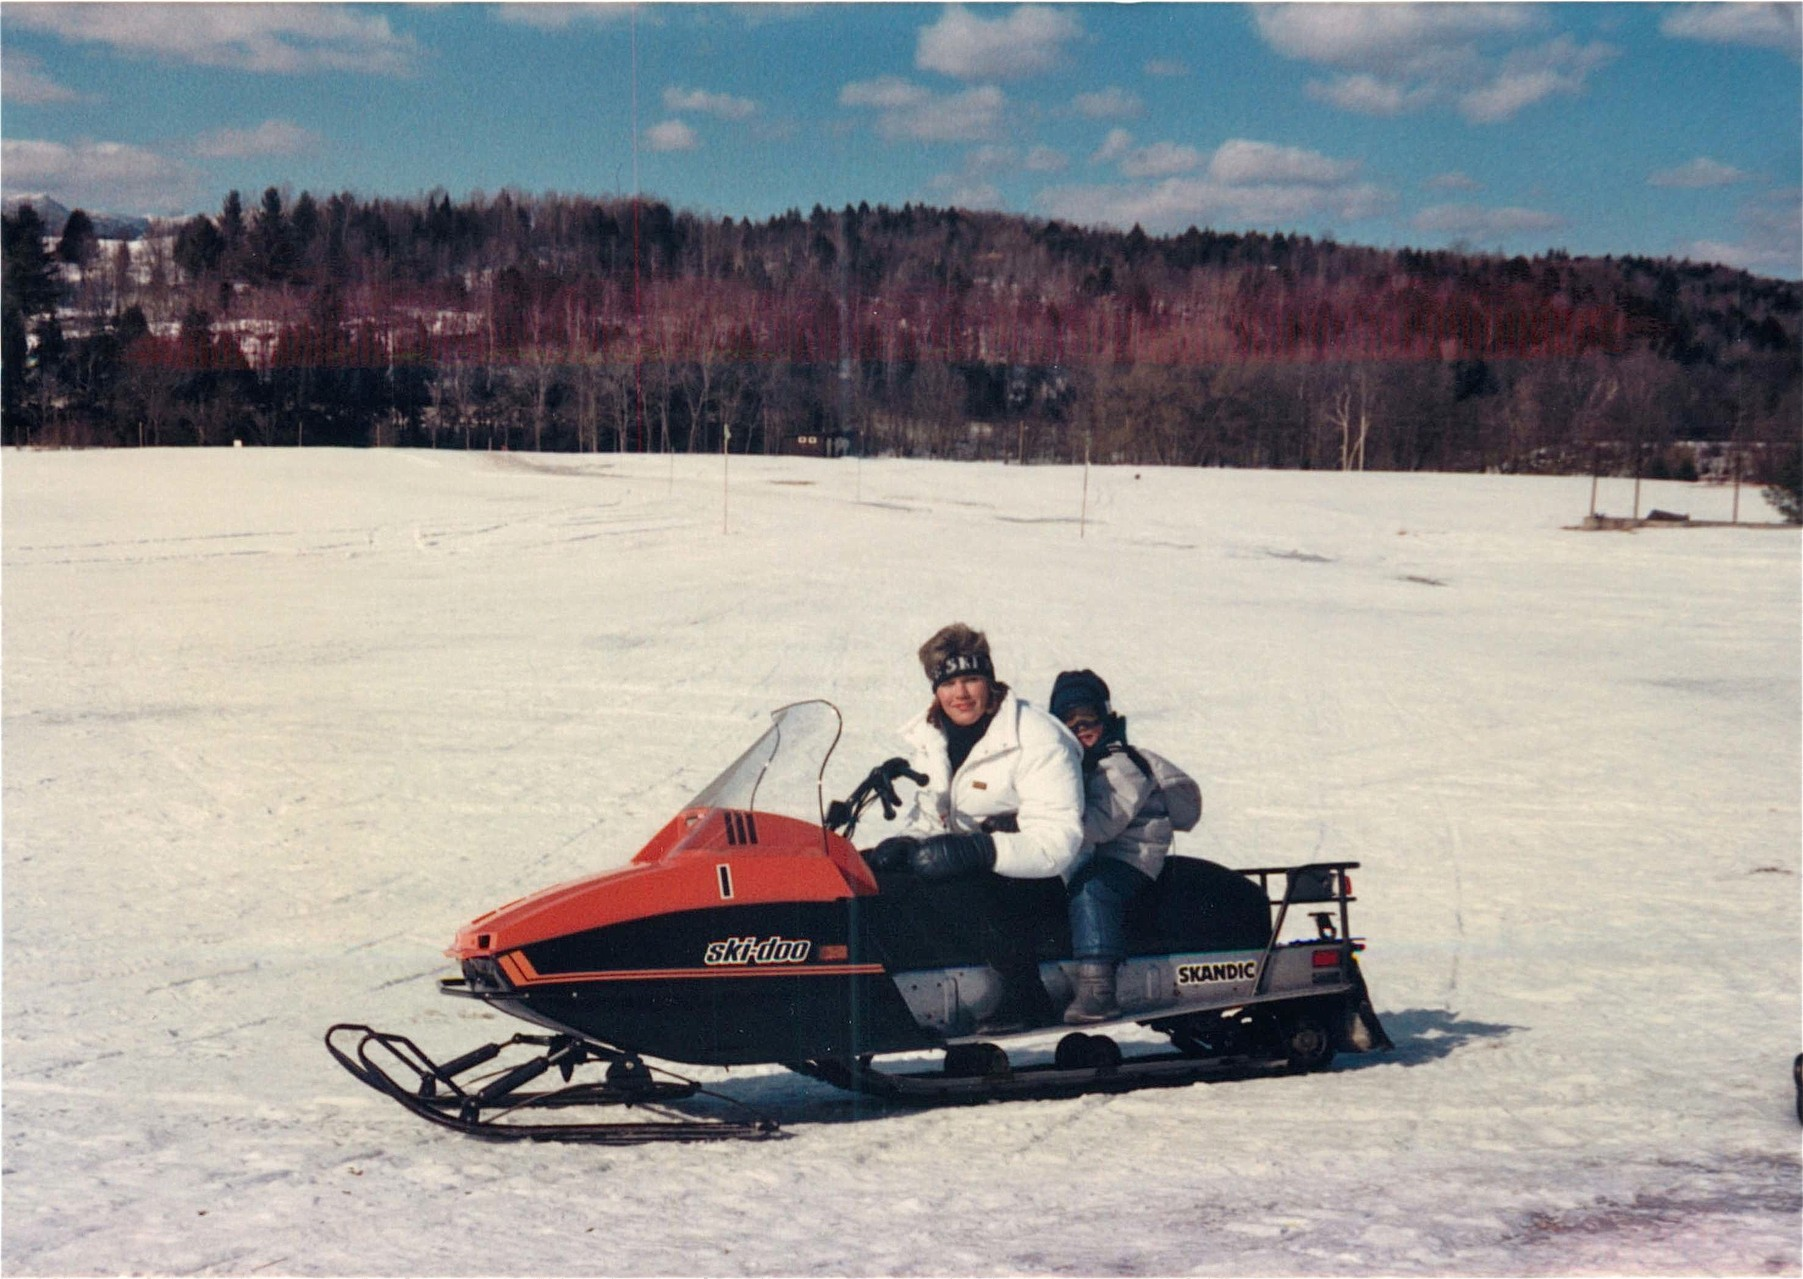 Celeste & Greg speed around the track, 1988, Vermont